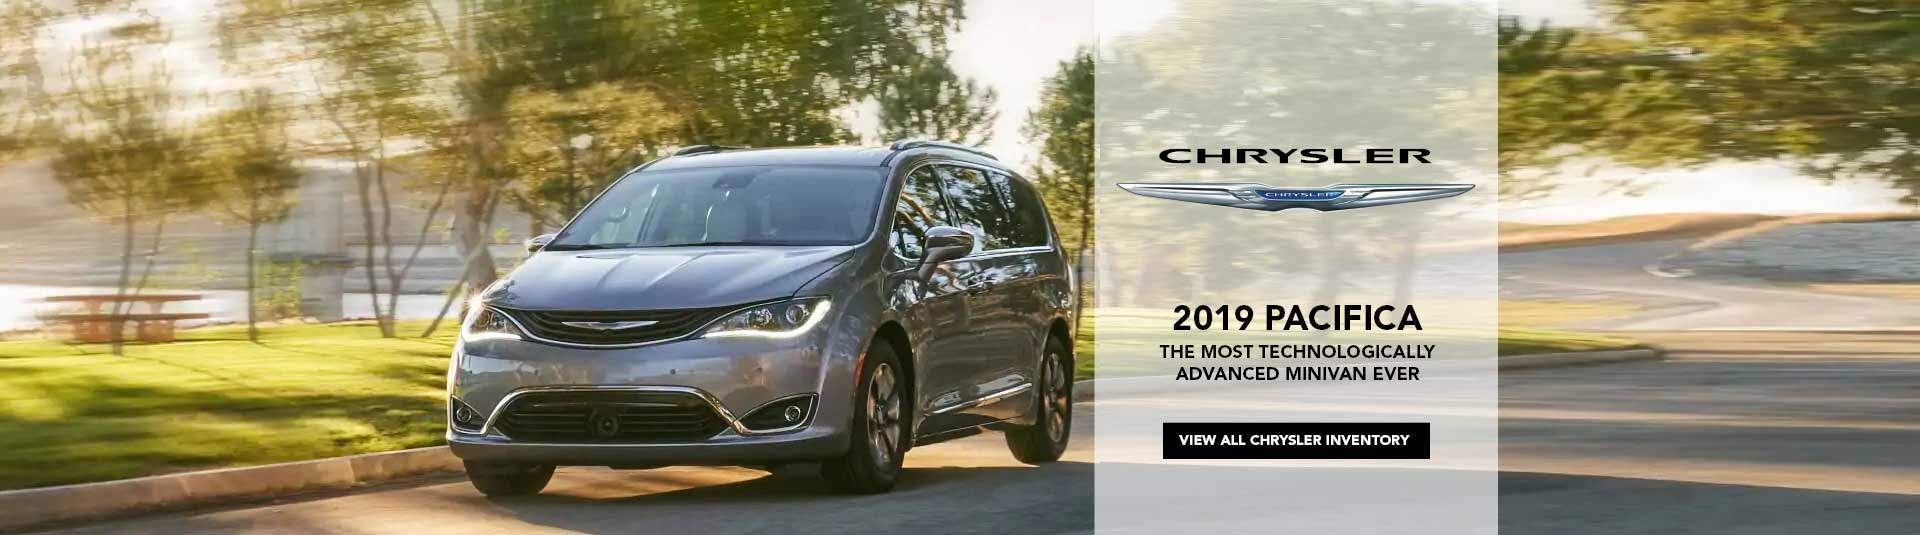 Chrysler-Pacifica-Hero.jpg